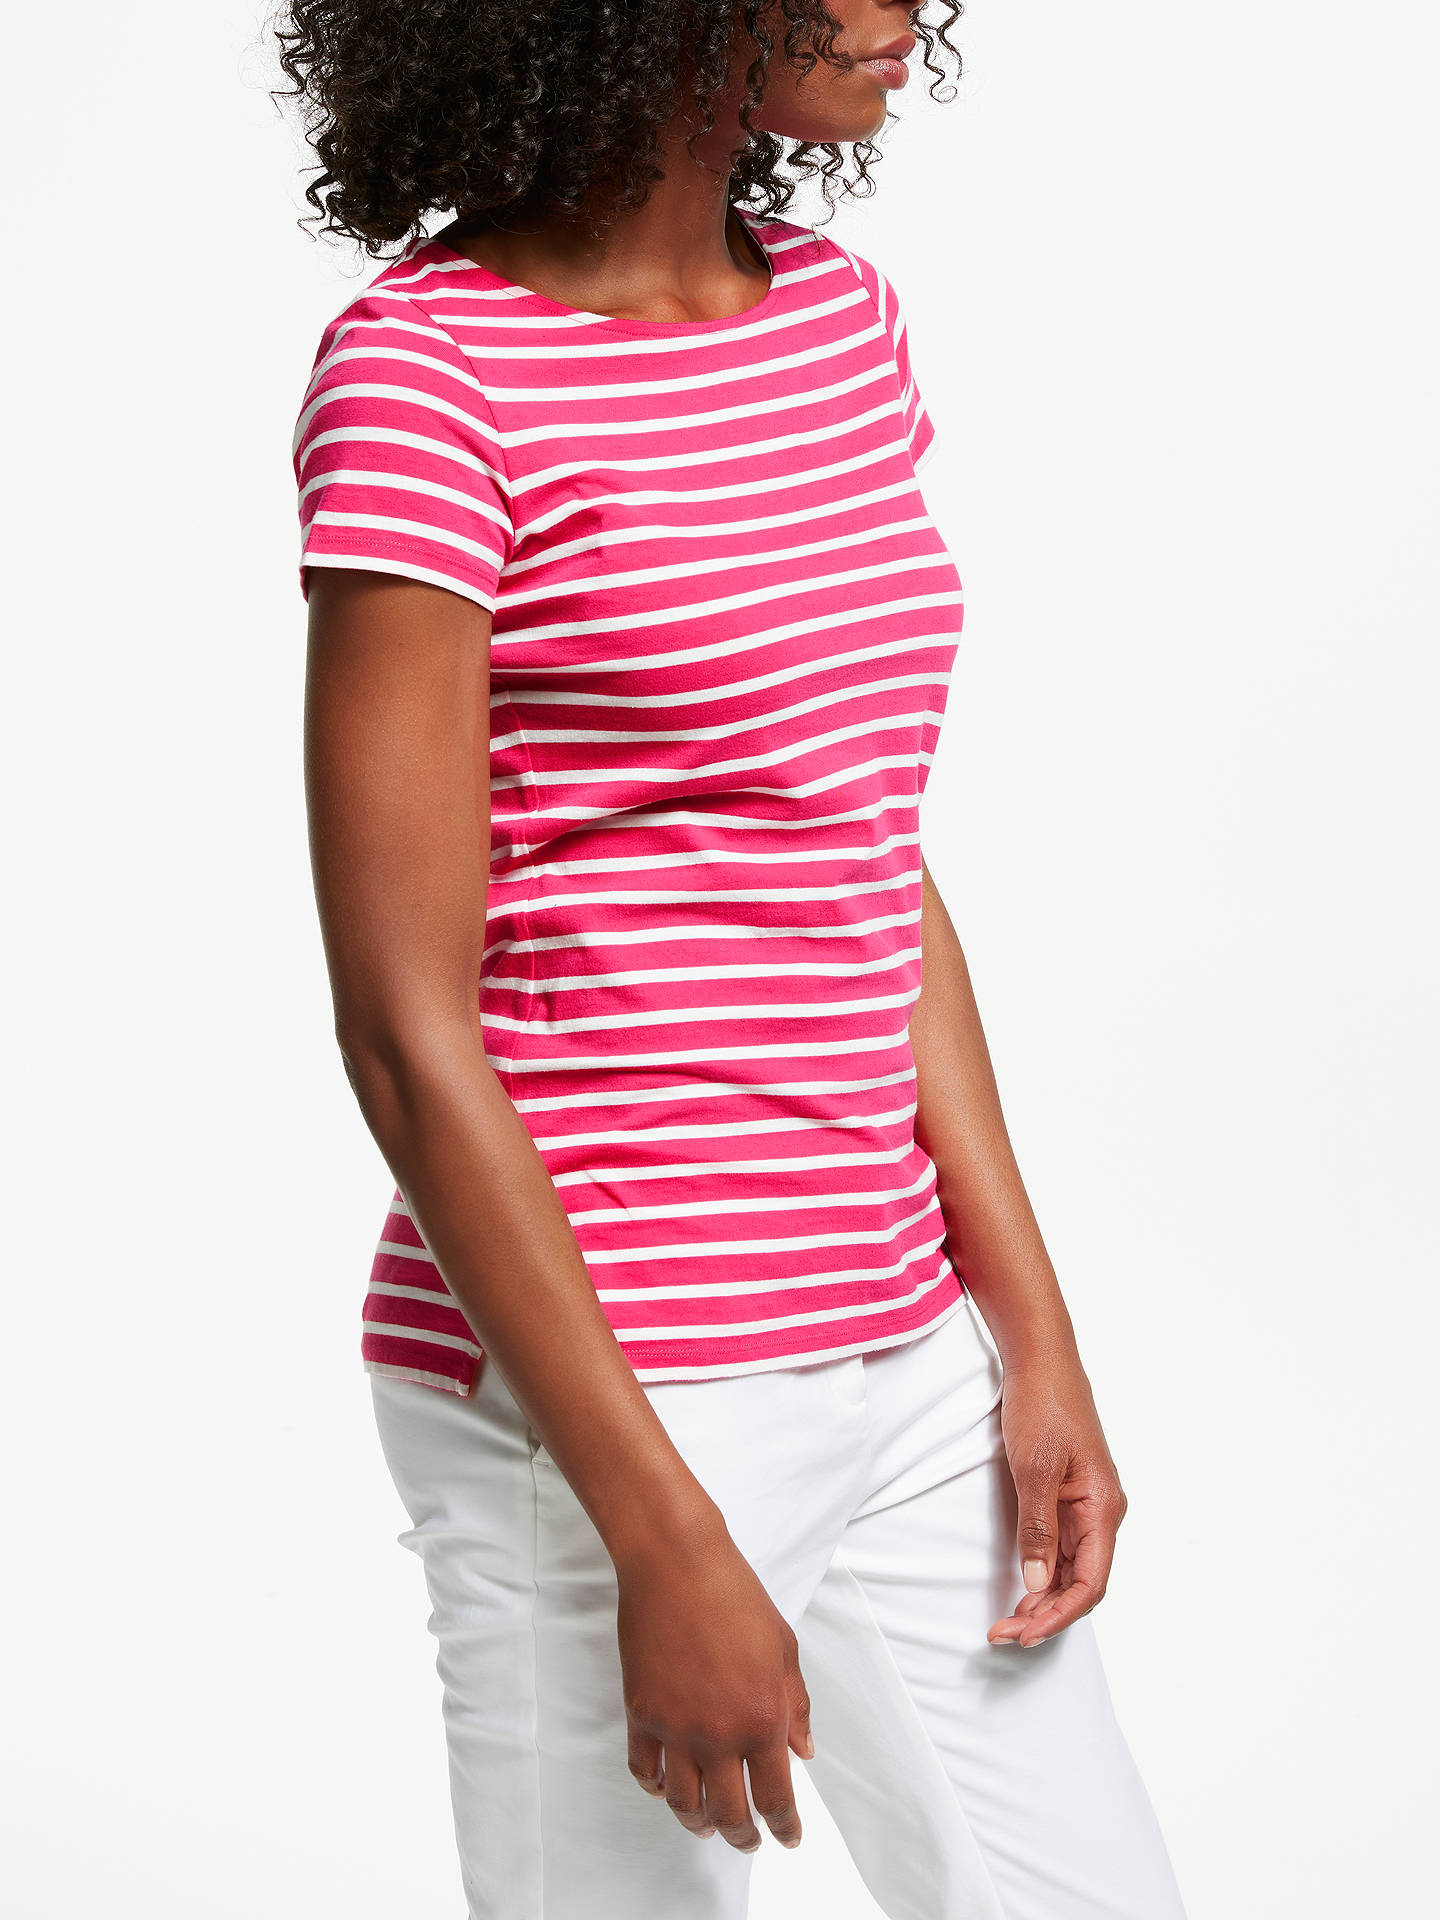 Buy Boden Breton Short Sleeve T-Shirt, Carnival Pink/Ivory, 8 Online at johnlewis.com